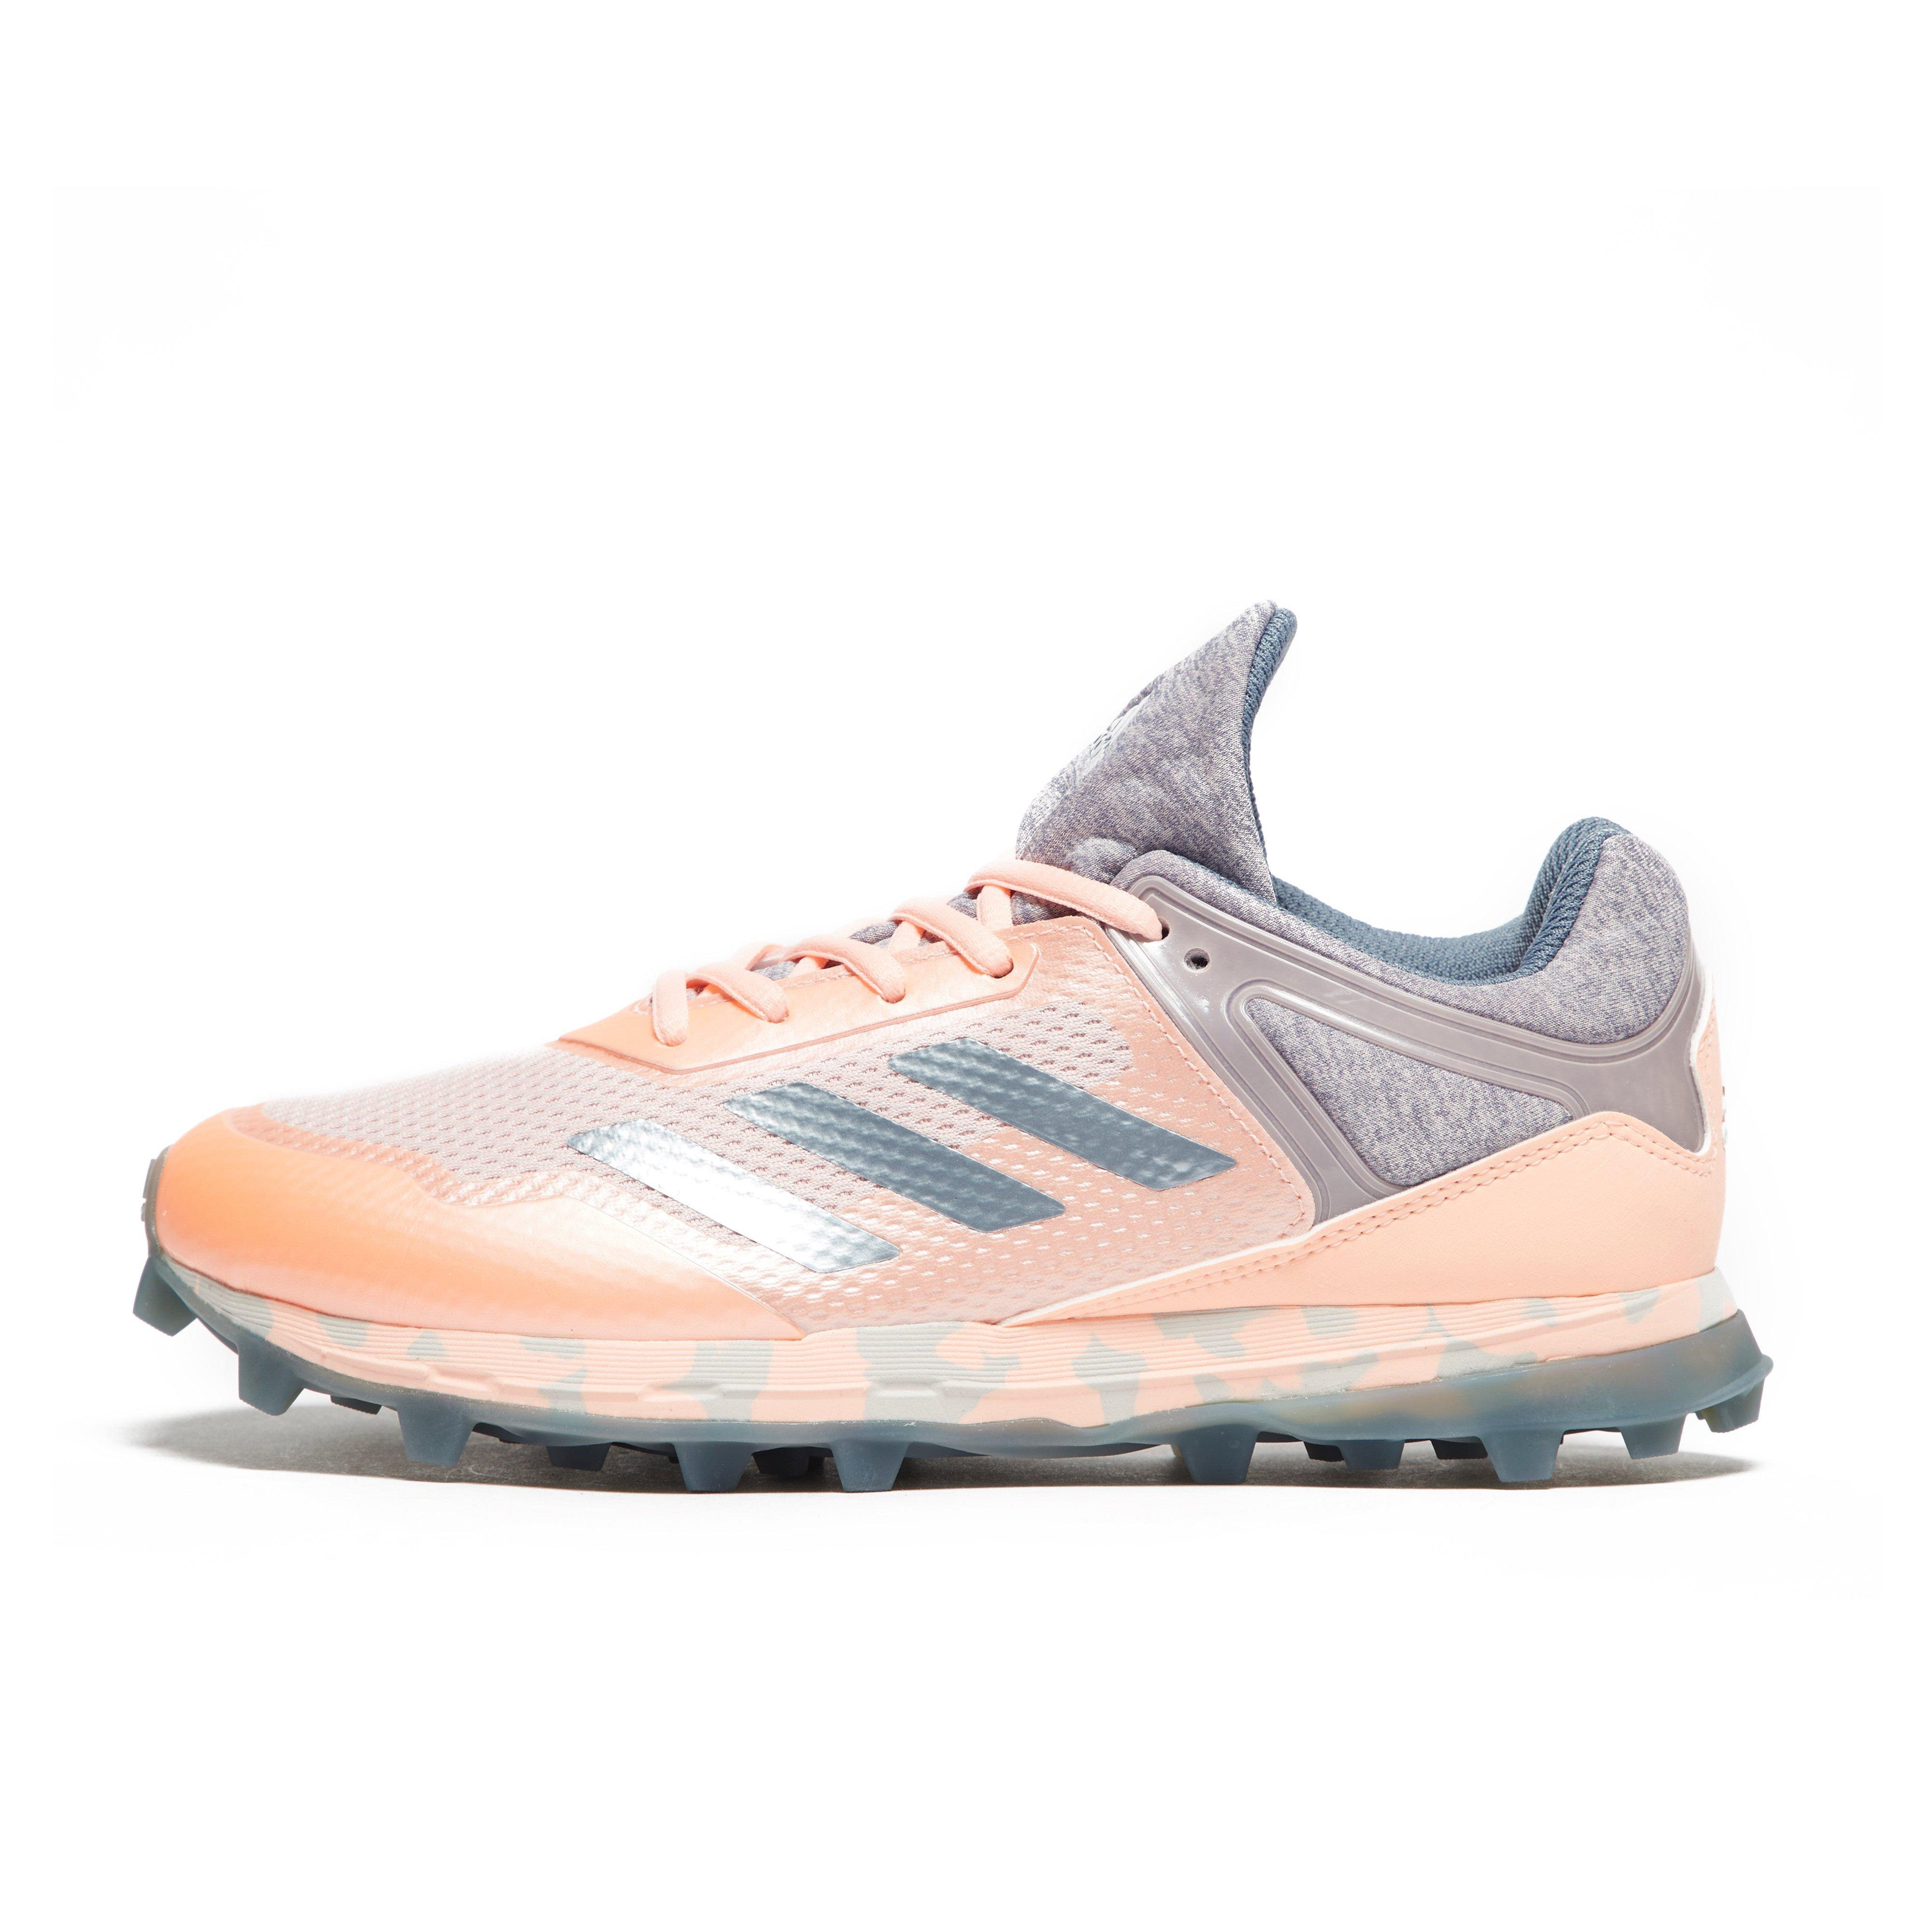 super popular a7f0c e086b Details about New Adidas Fabela Zone Hockey Court Sports Shoes Trainers Pink